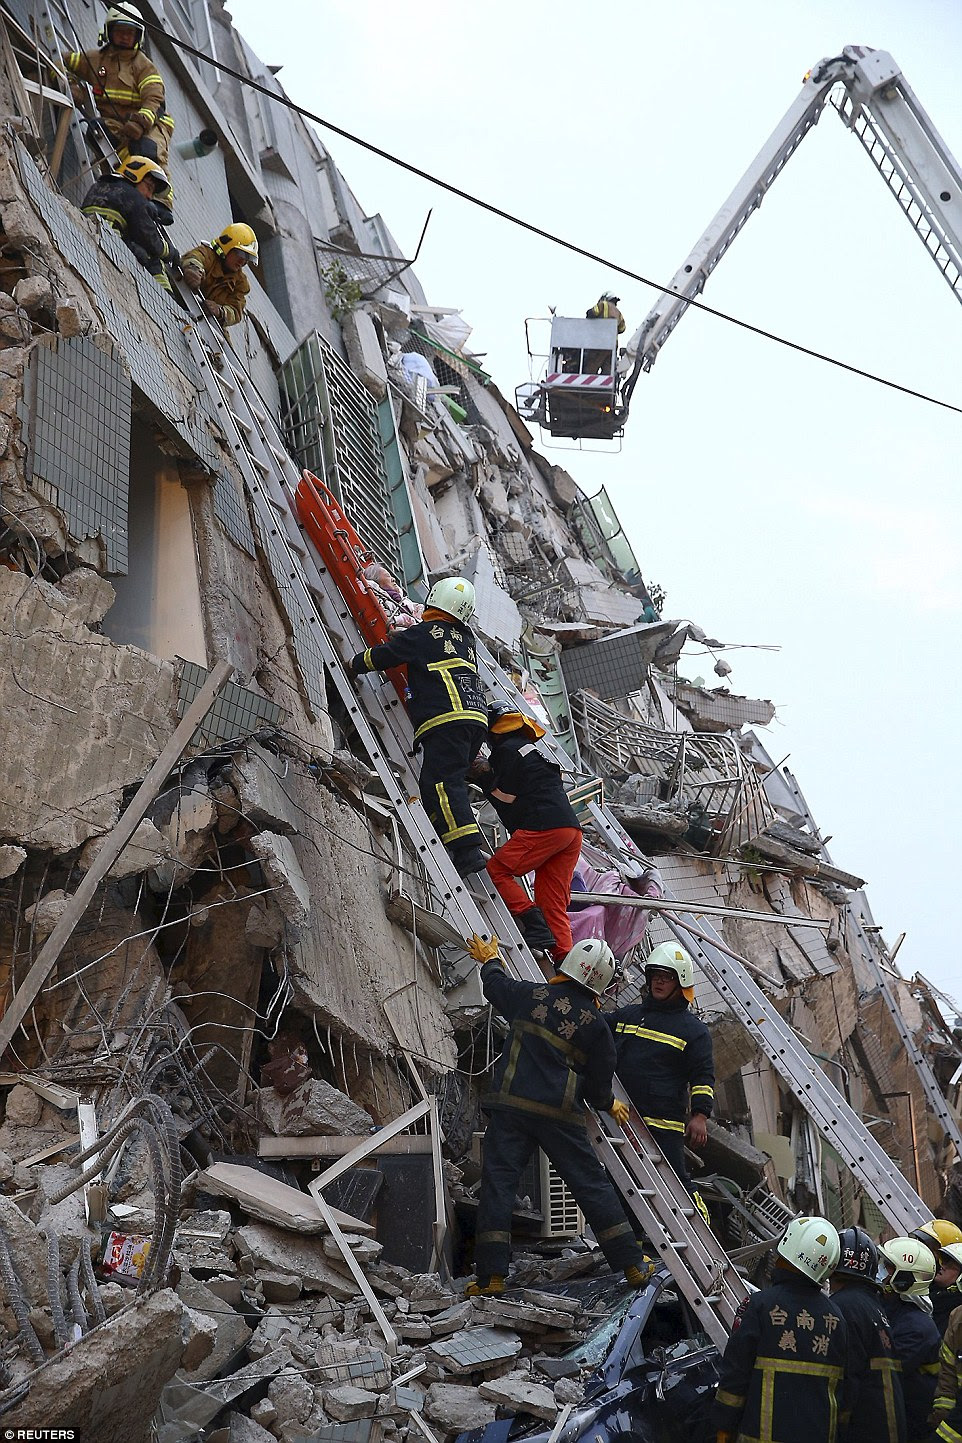 Rescuers climb up the mangled ruins of the apartment block to reach people trapped on the higher floors